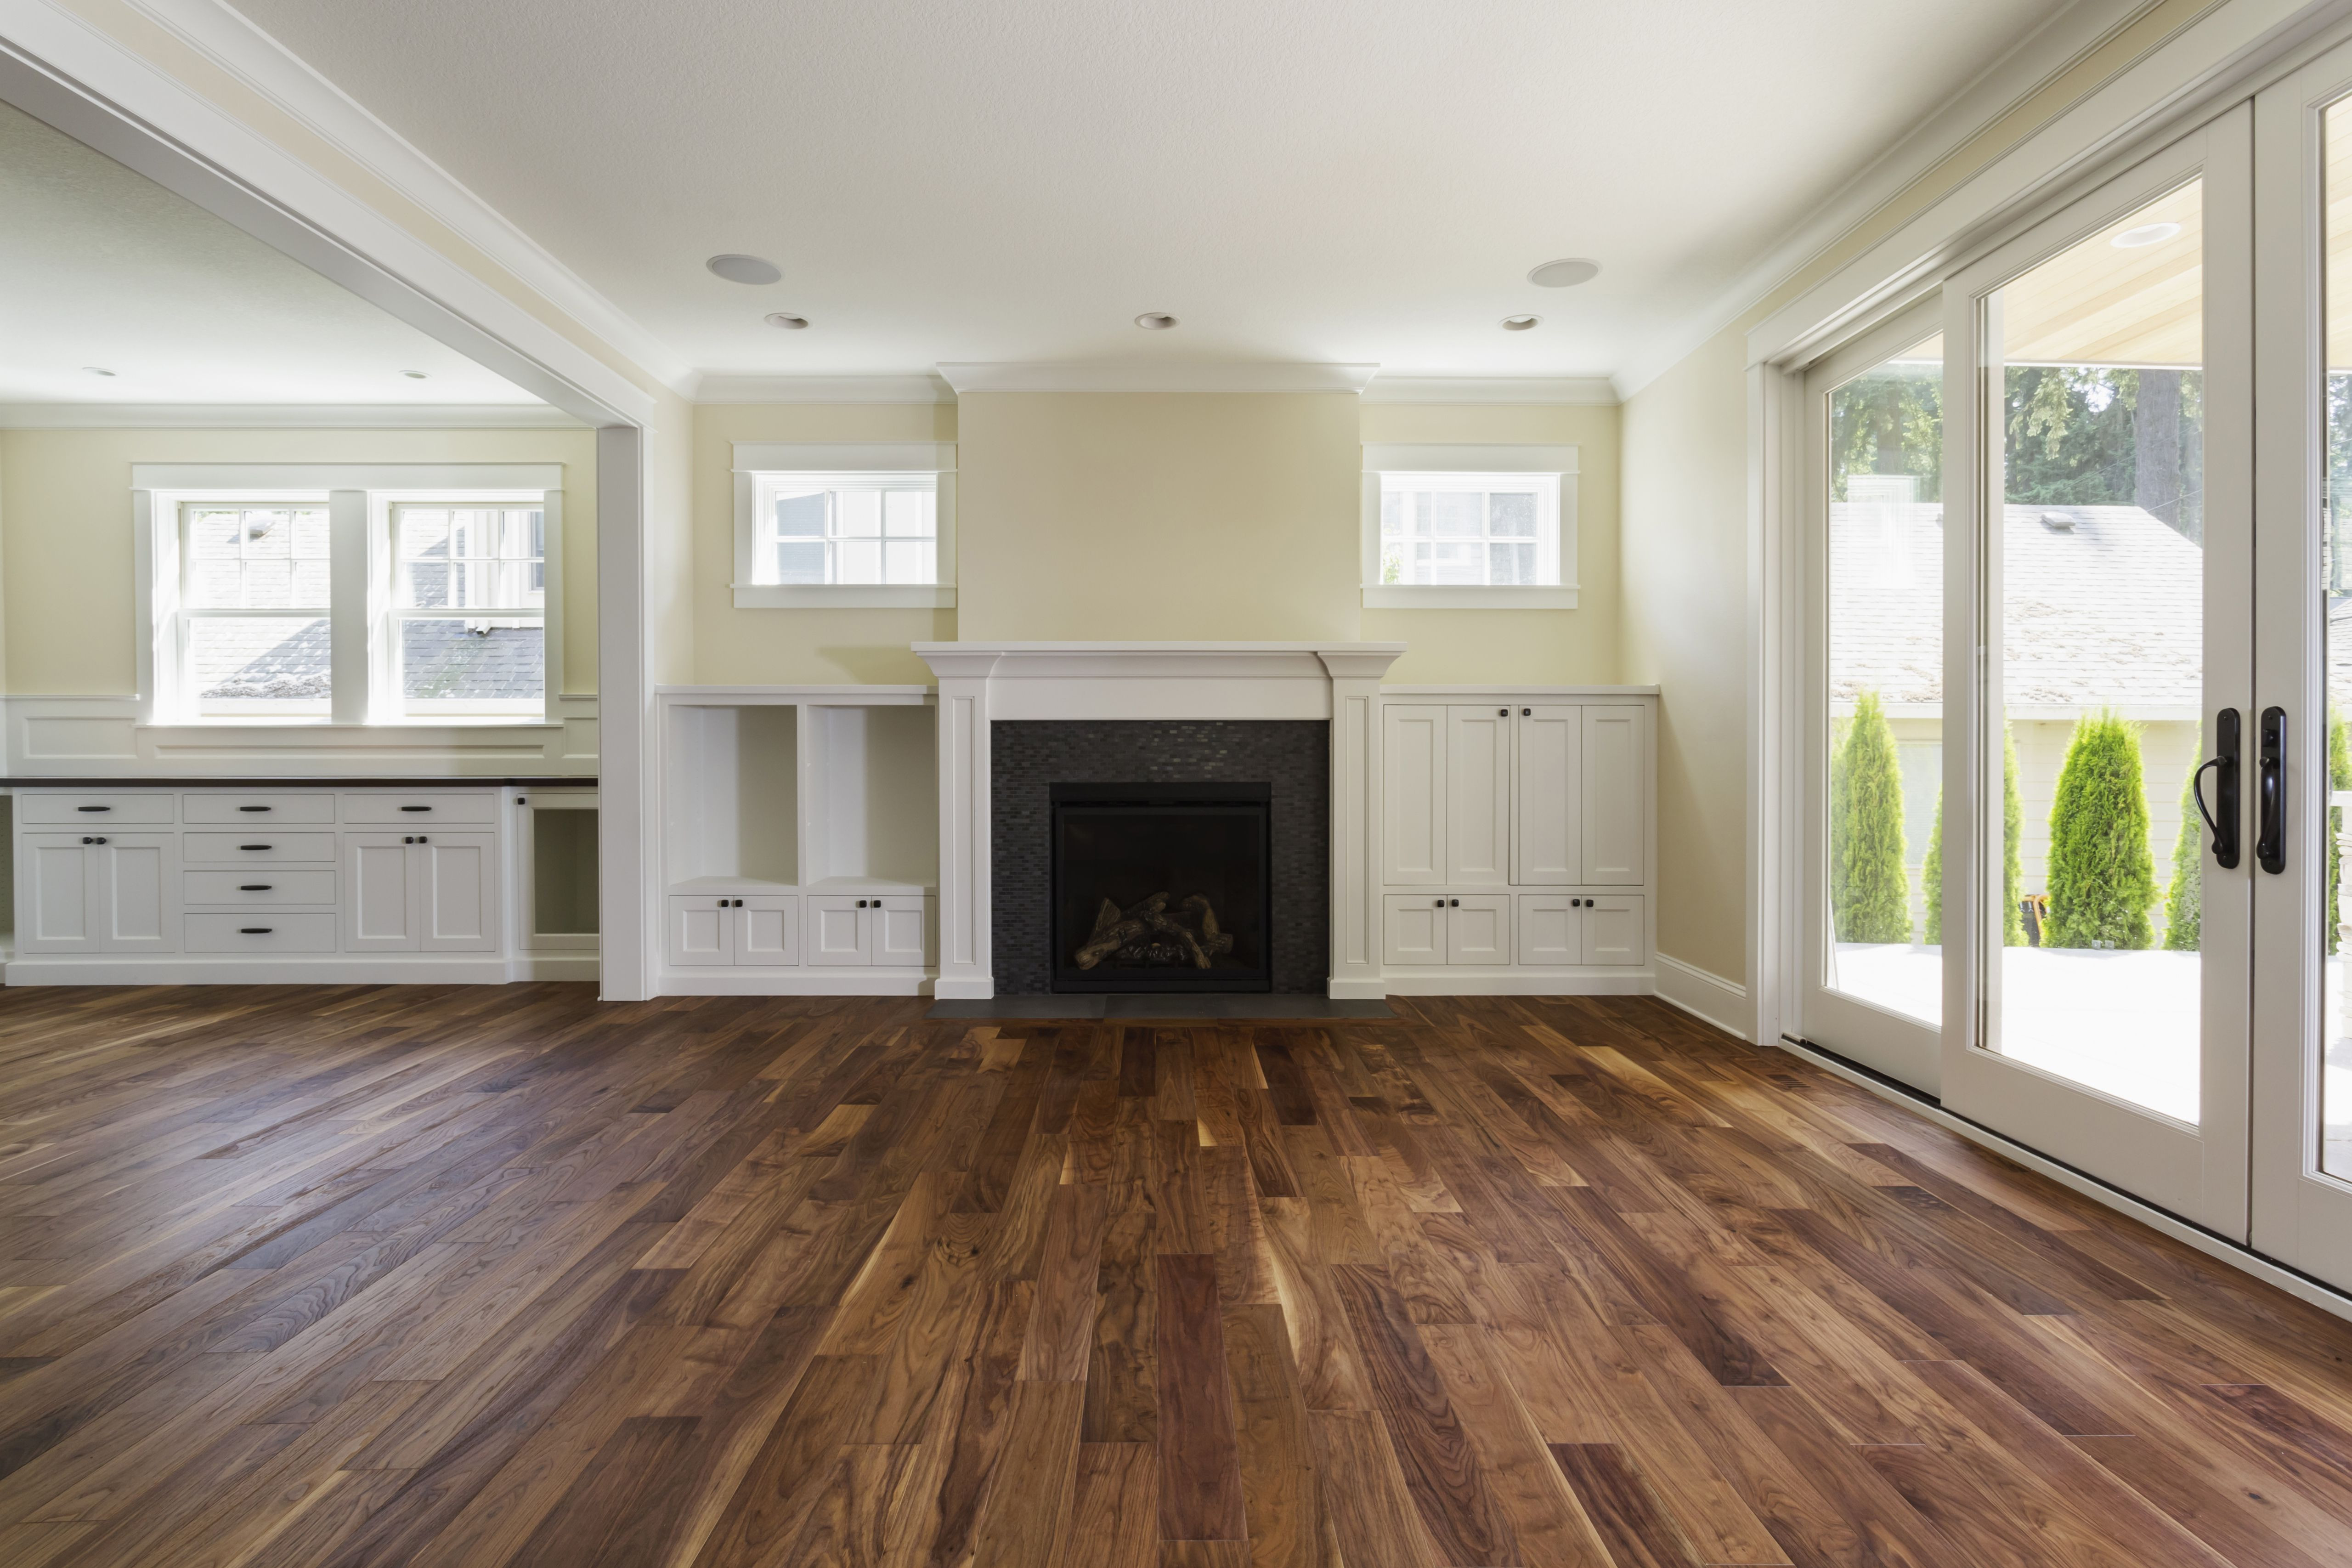 cleaning bruce prefinished hardwood floors of the pros and cons of prefinished hardwood flooring throughout fireplace and built in shelves in living room 482143011 57bef8e33df78cc16e035397